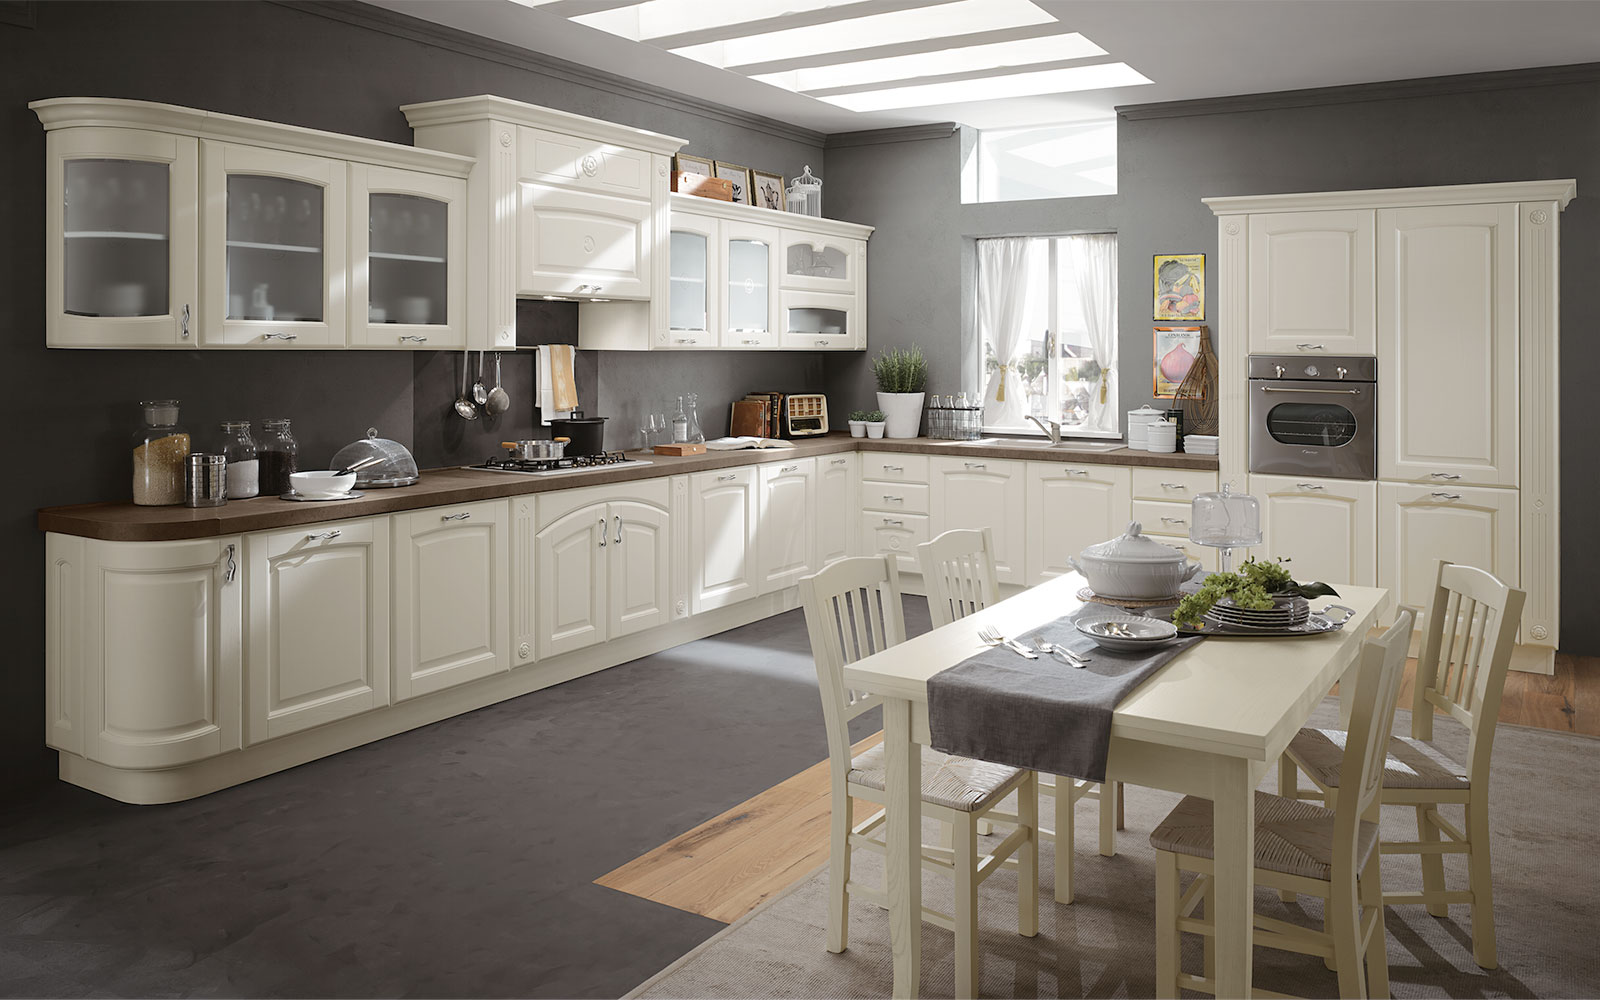 Cucine Old Style. Elegant My Kitchen With Cucine Old Style. Amazing ...